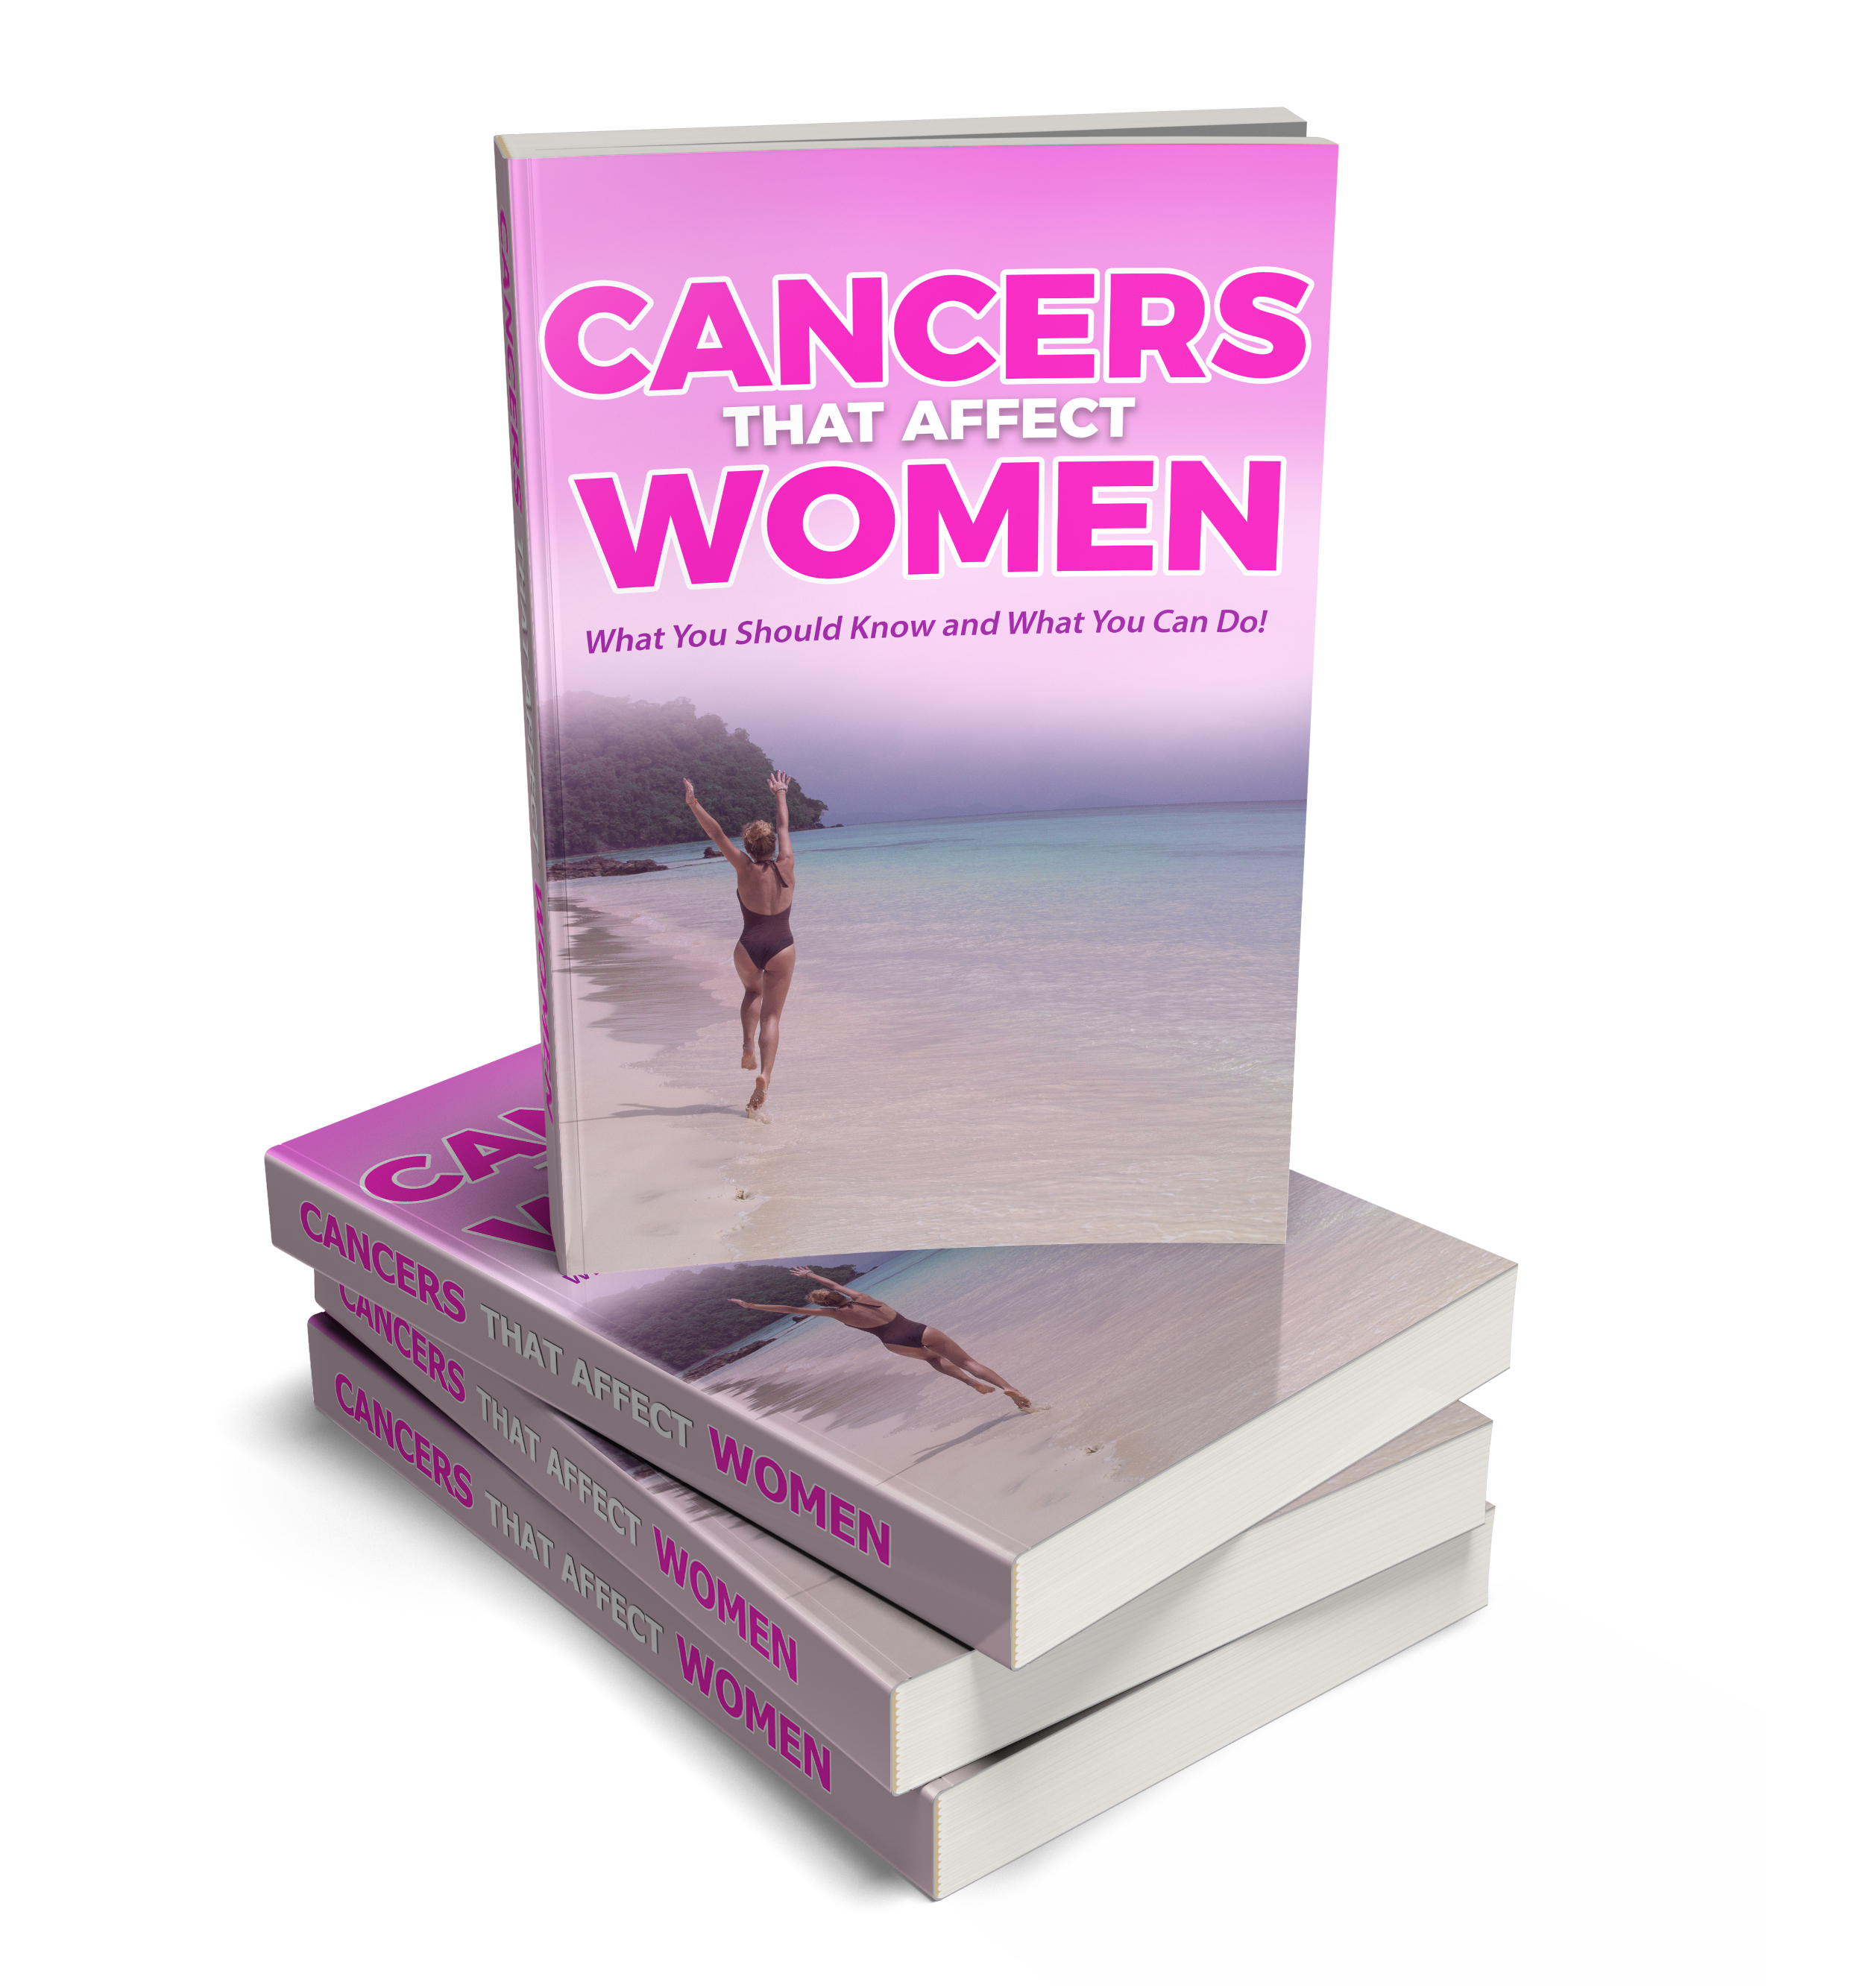 Cancers That Affect Women